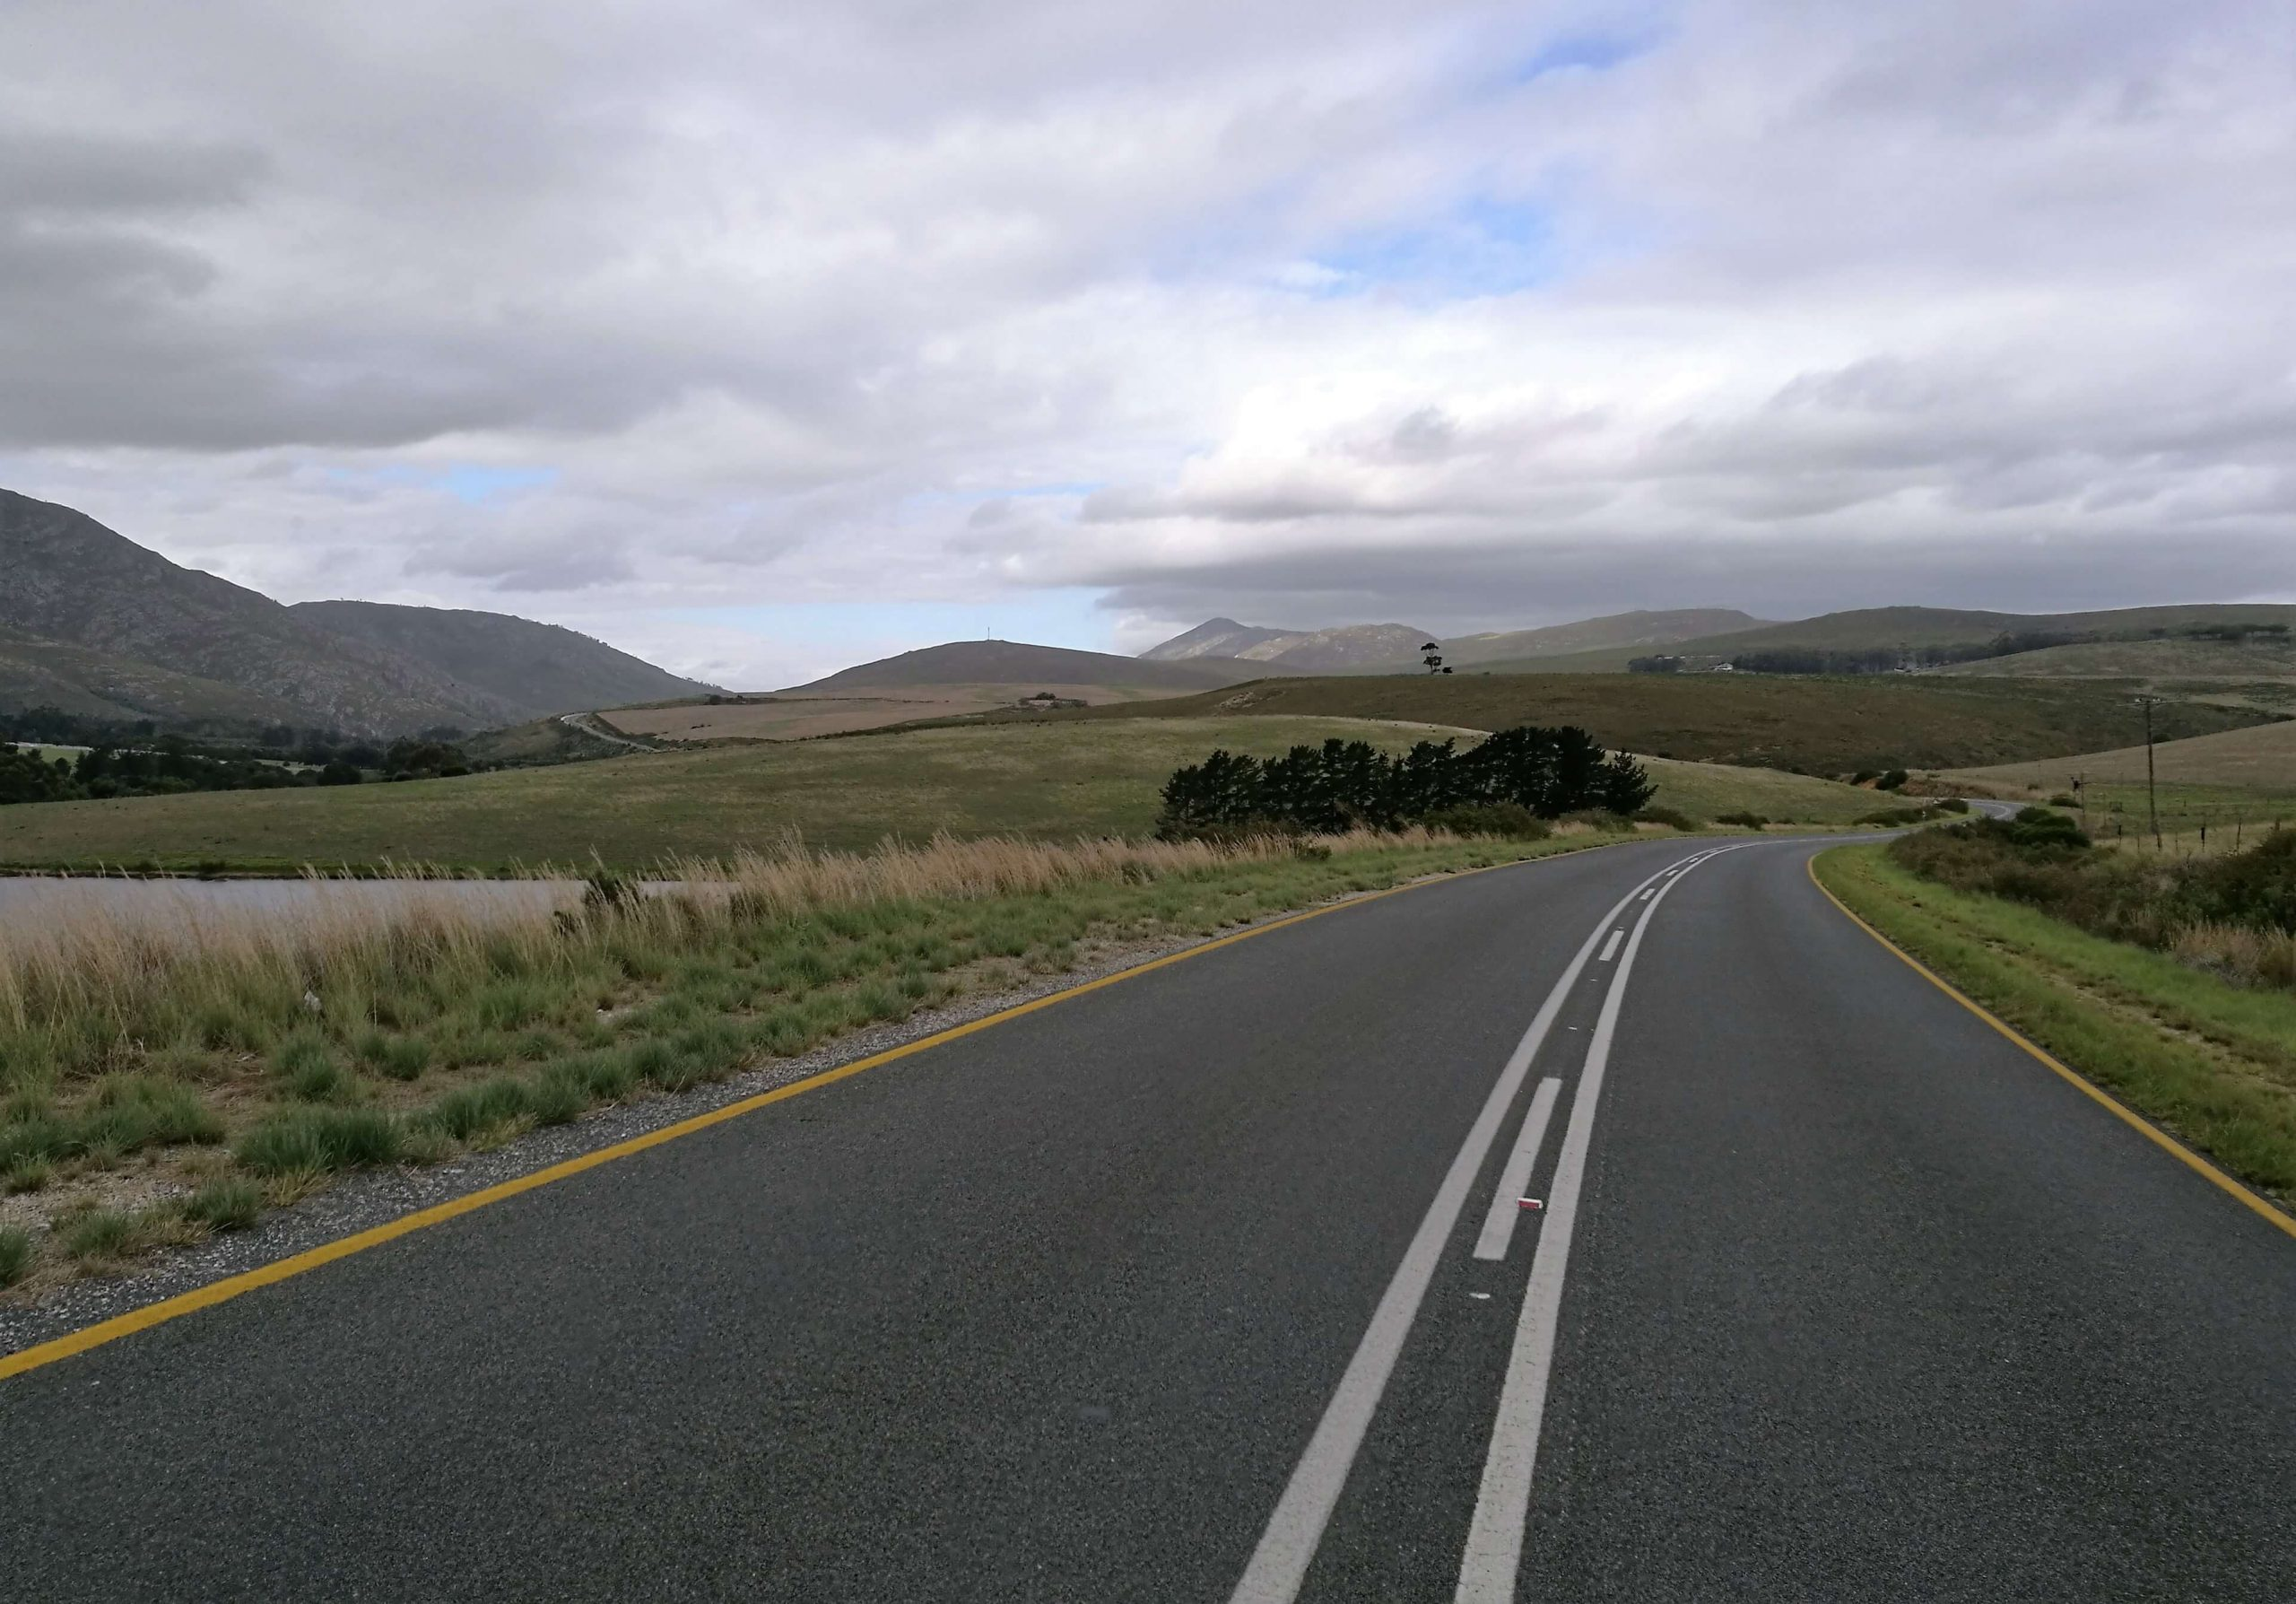 Johannesburg to Cape Town road trip: route suggestions